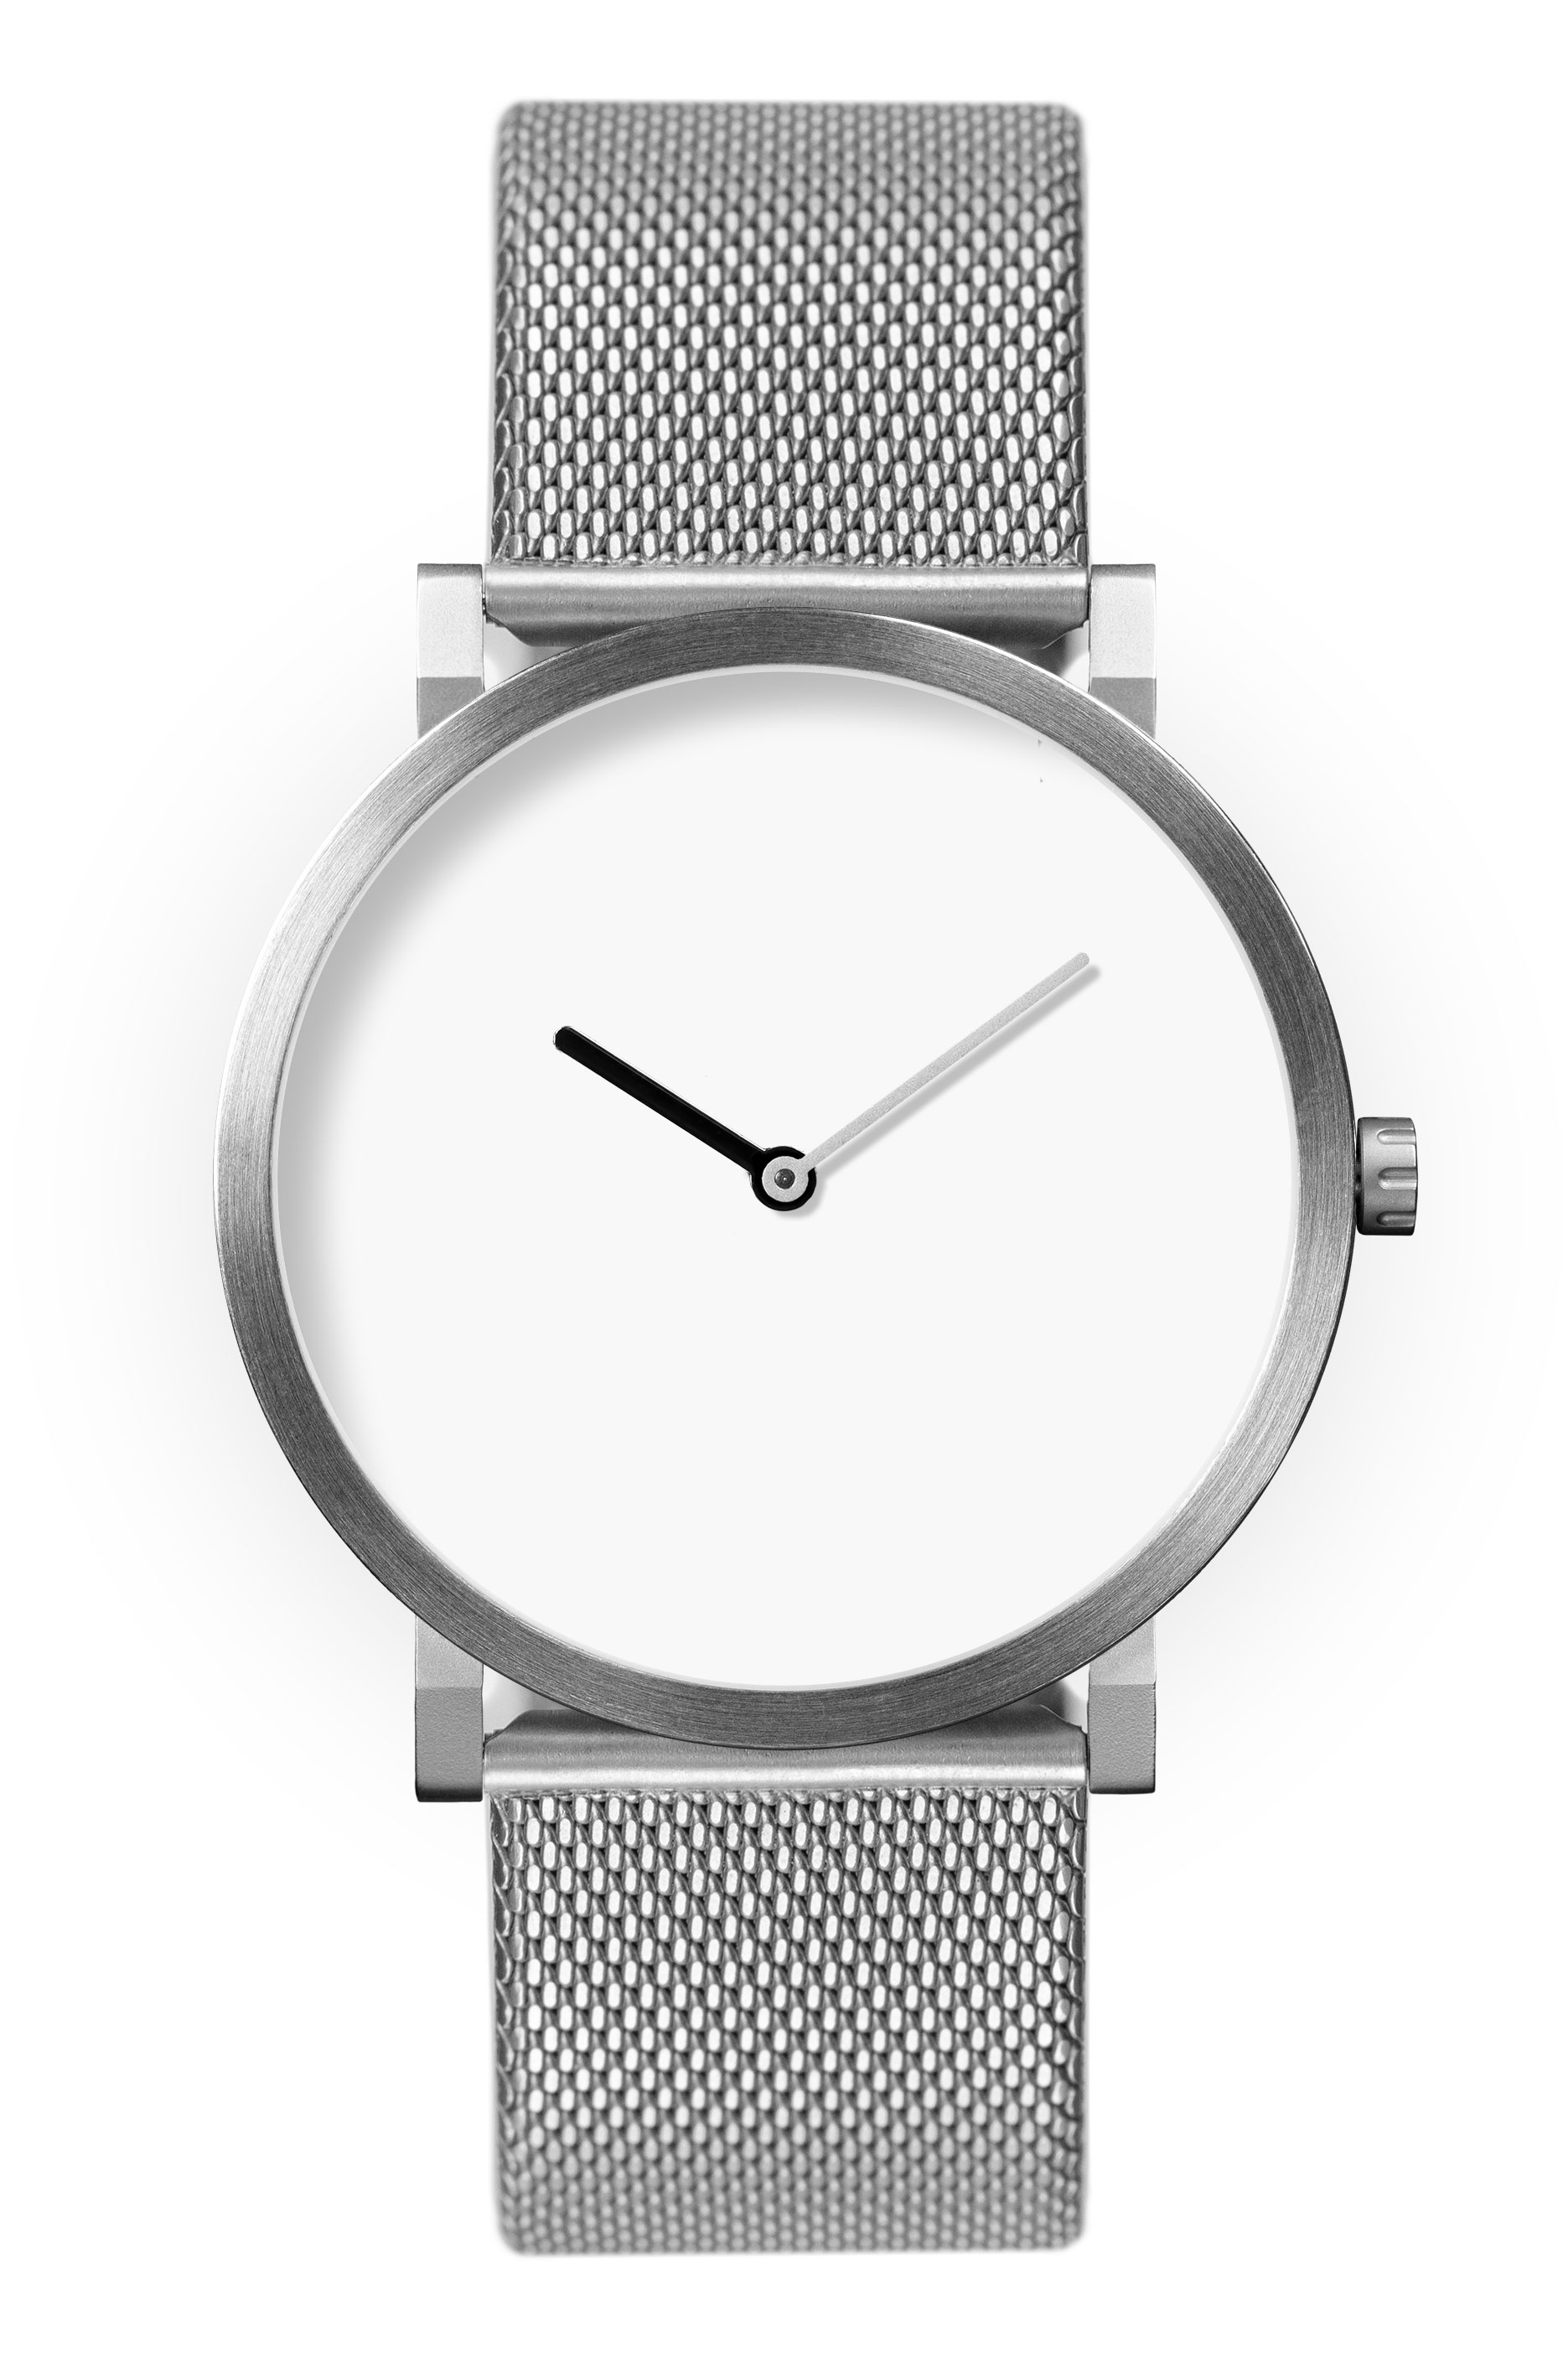 Glossy White with Stainless Steel Strap